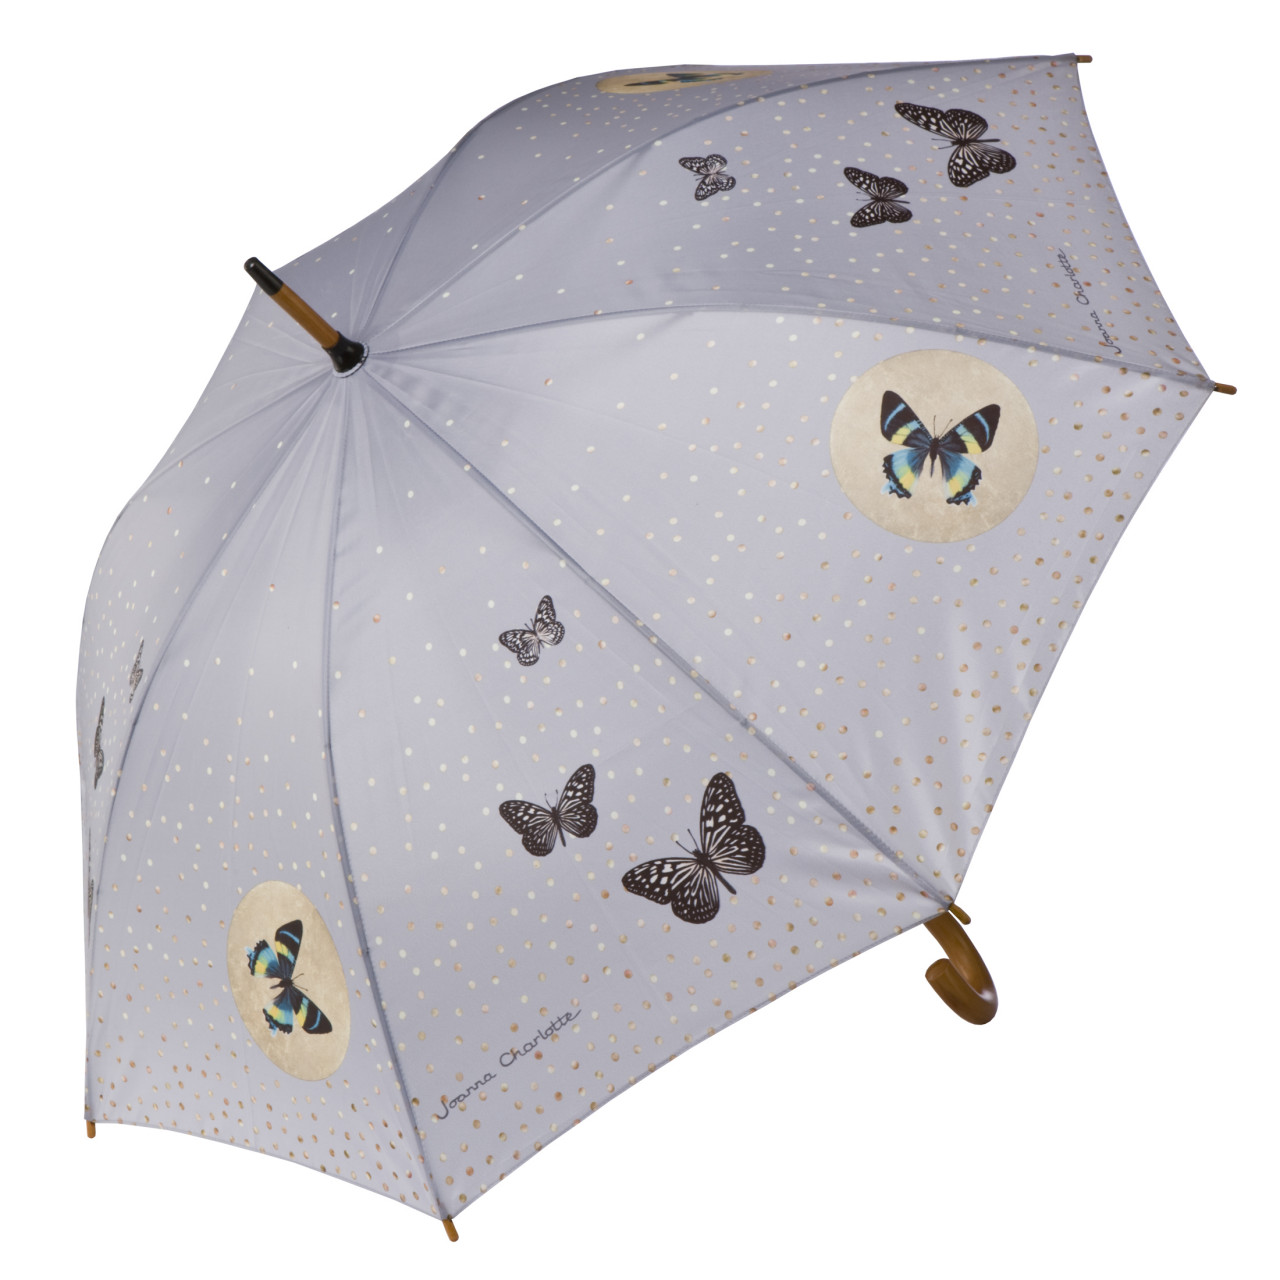 Goebel Artis Orbis Grey Butterflies Stockschirm